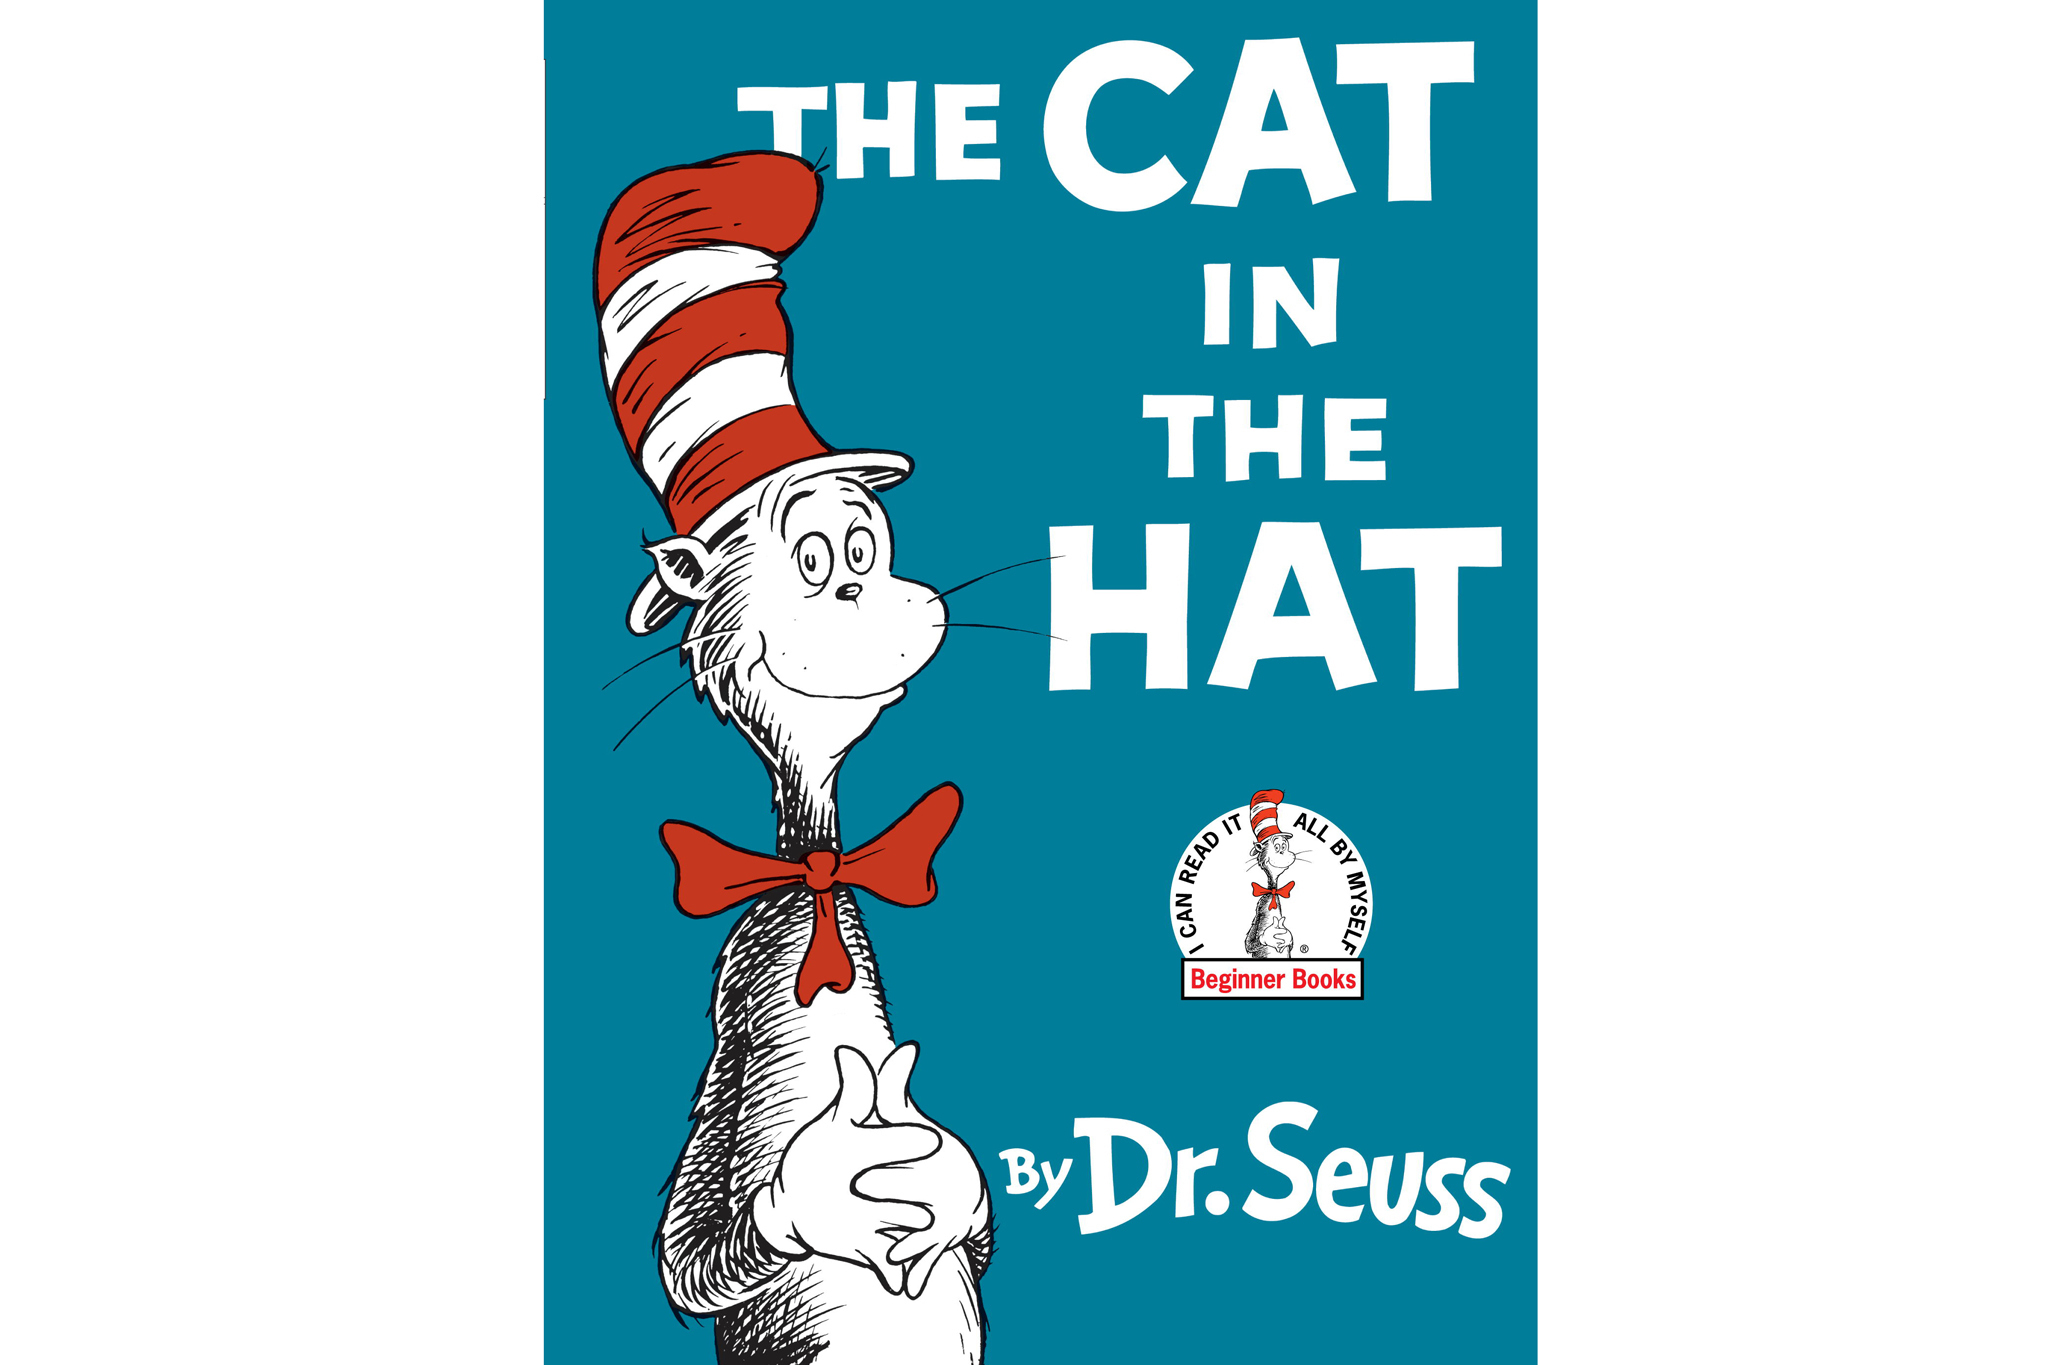 100 best children's books: The Cat in the Hat